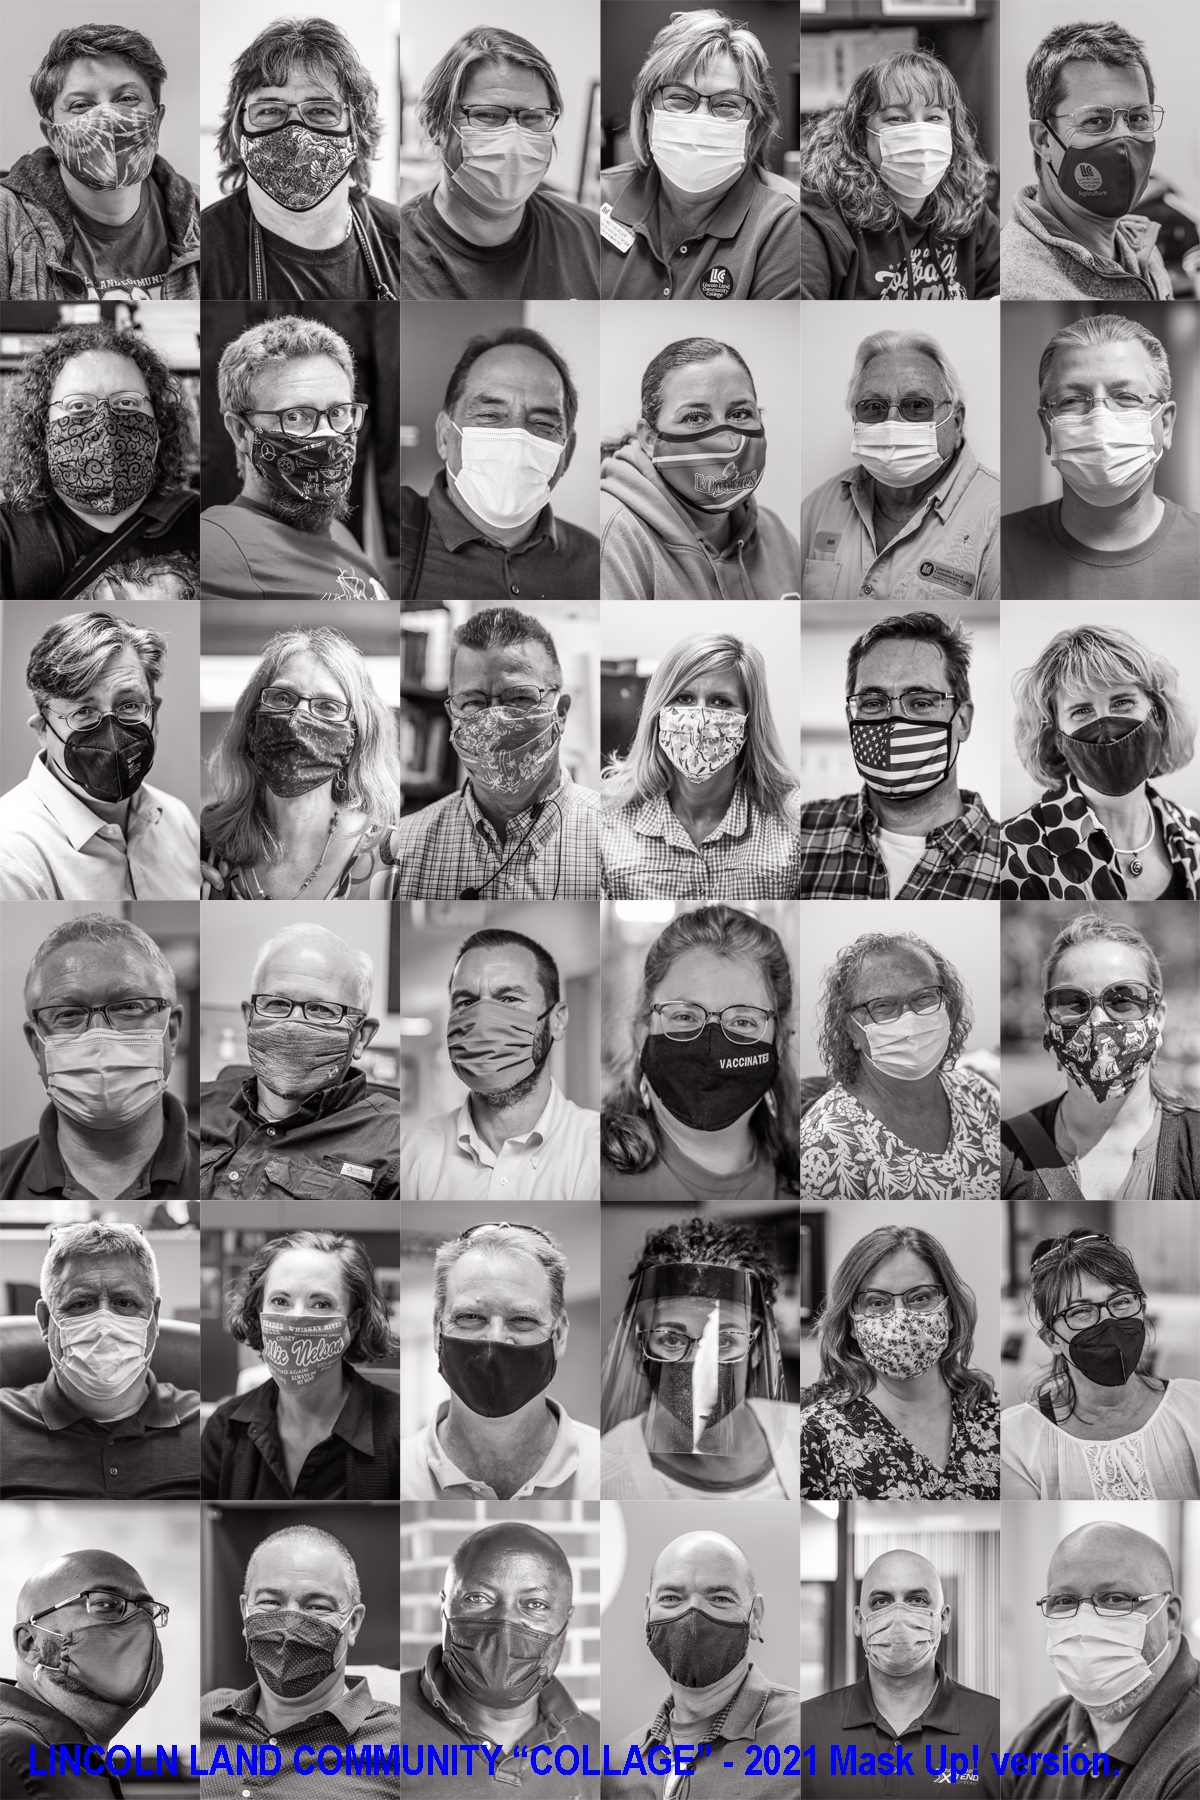 """36 faces of LLCC faculty and staff smiling behind their masks with the text: Lincoln Land Community """"Collage"""" - 2021 Mask Up! version."""